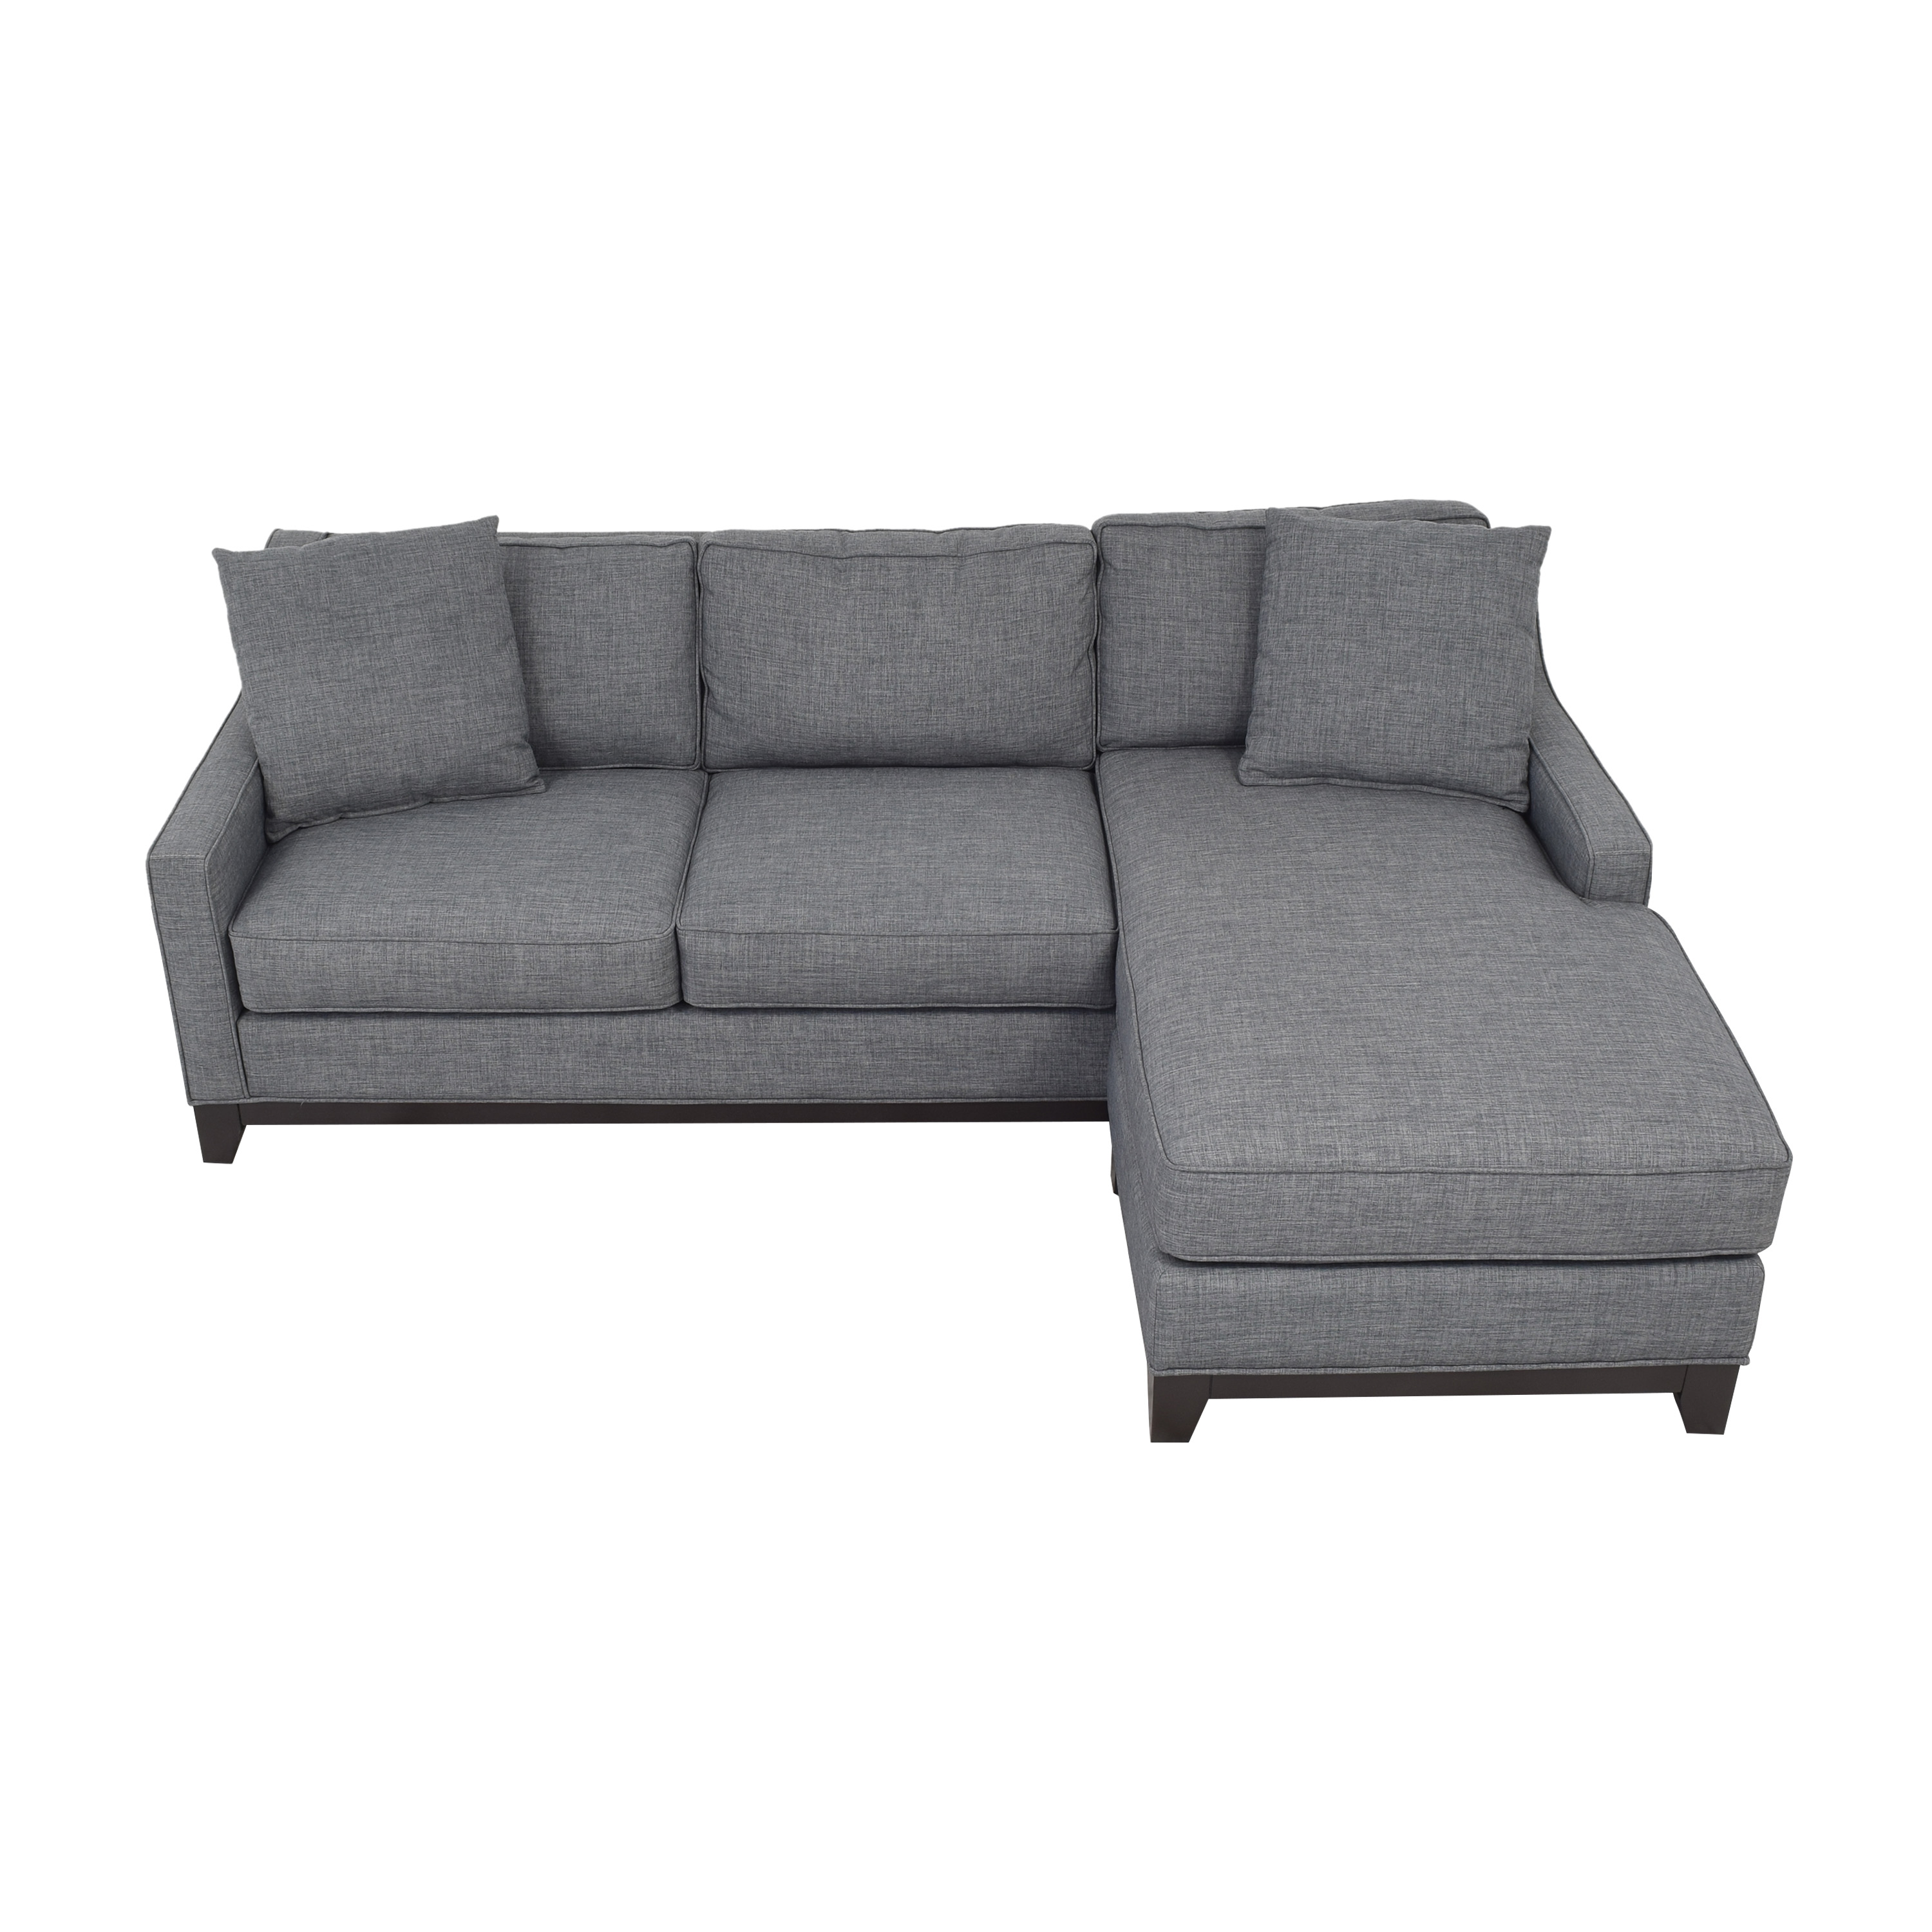 Macy's Keegan 2-Piece Fabric Reversible Chaise Sectional Sofa sale